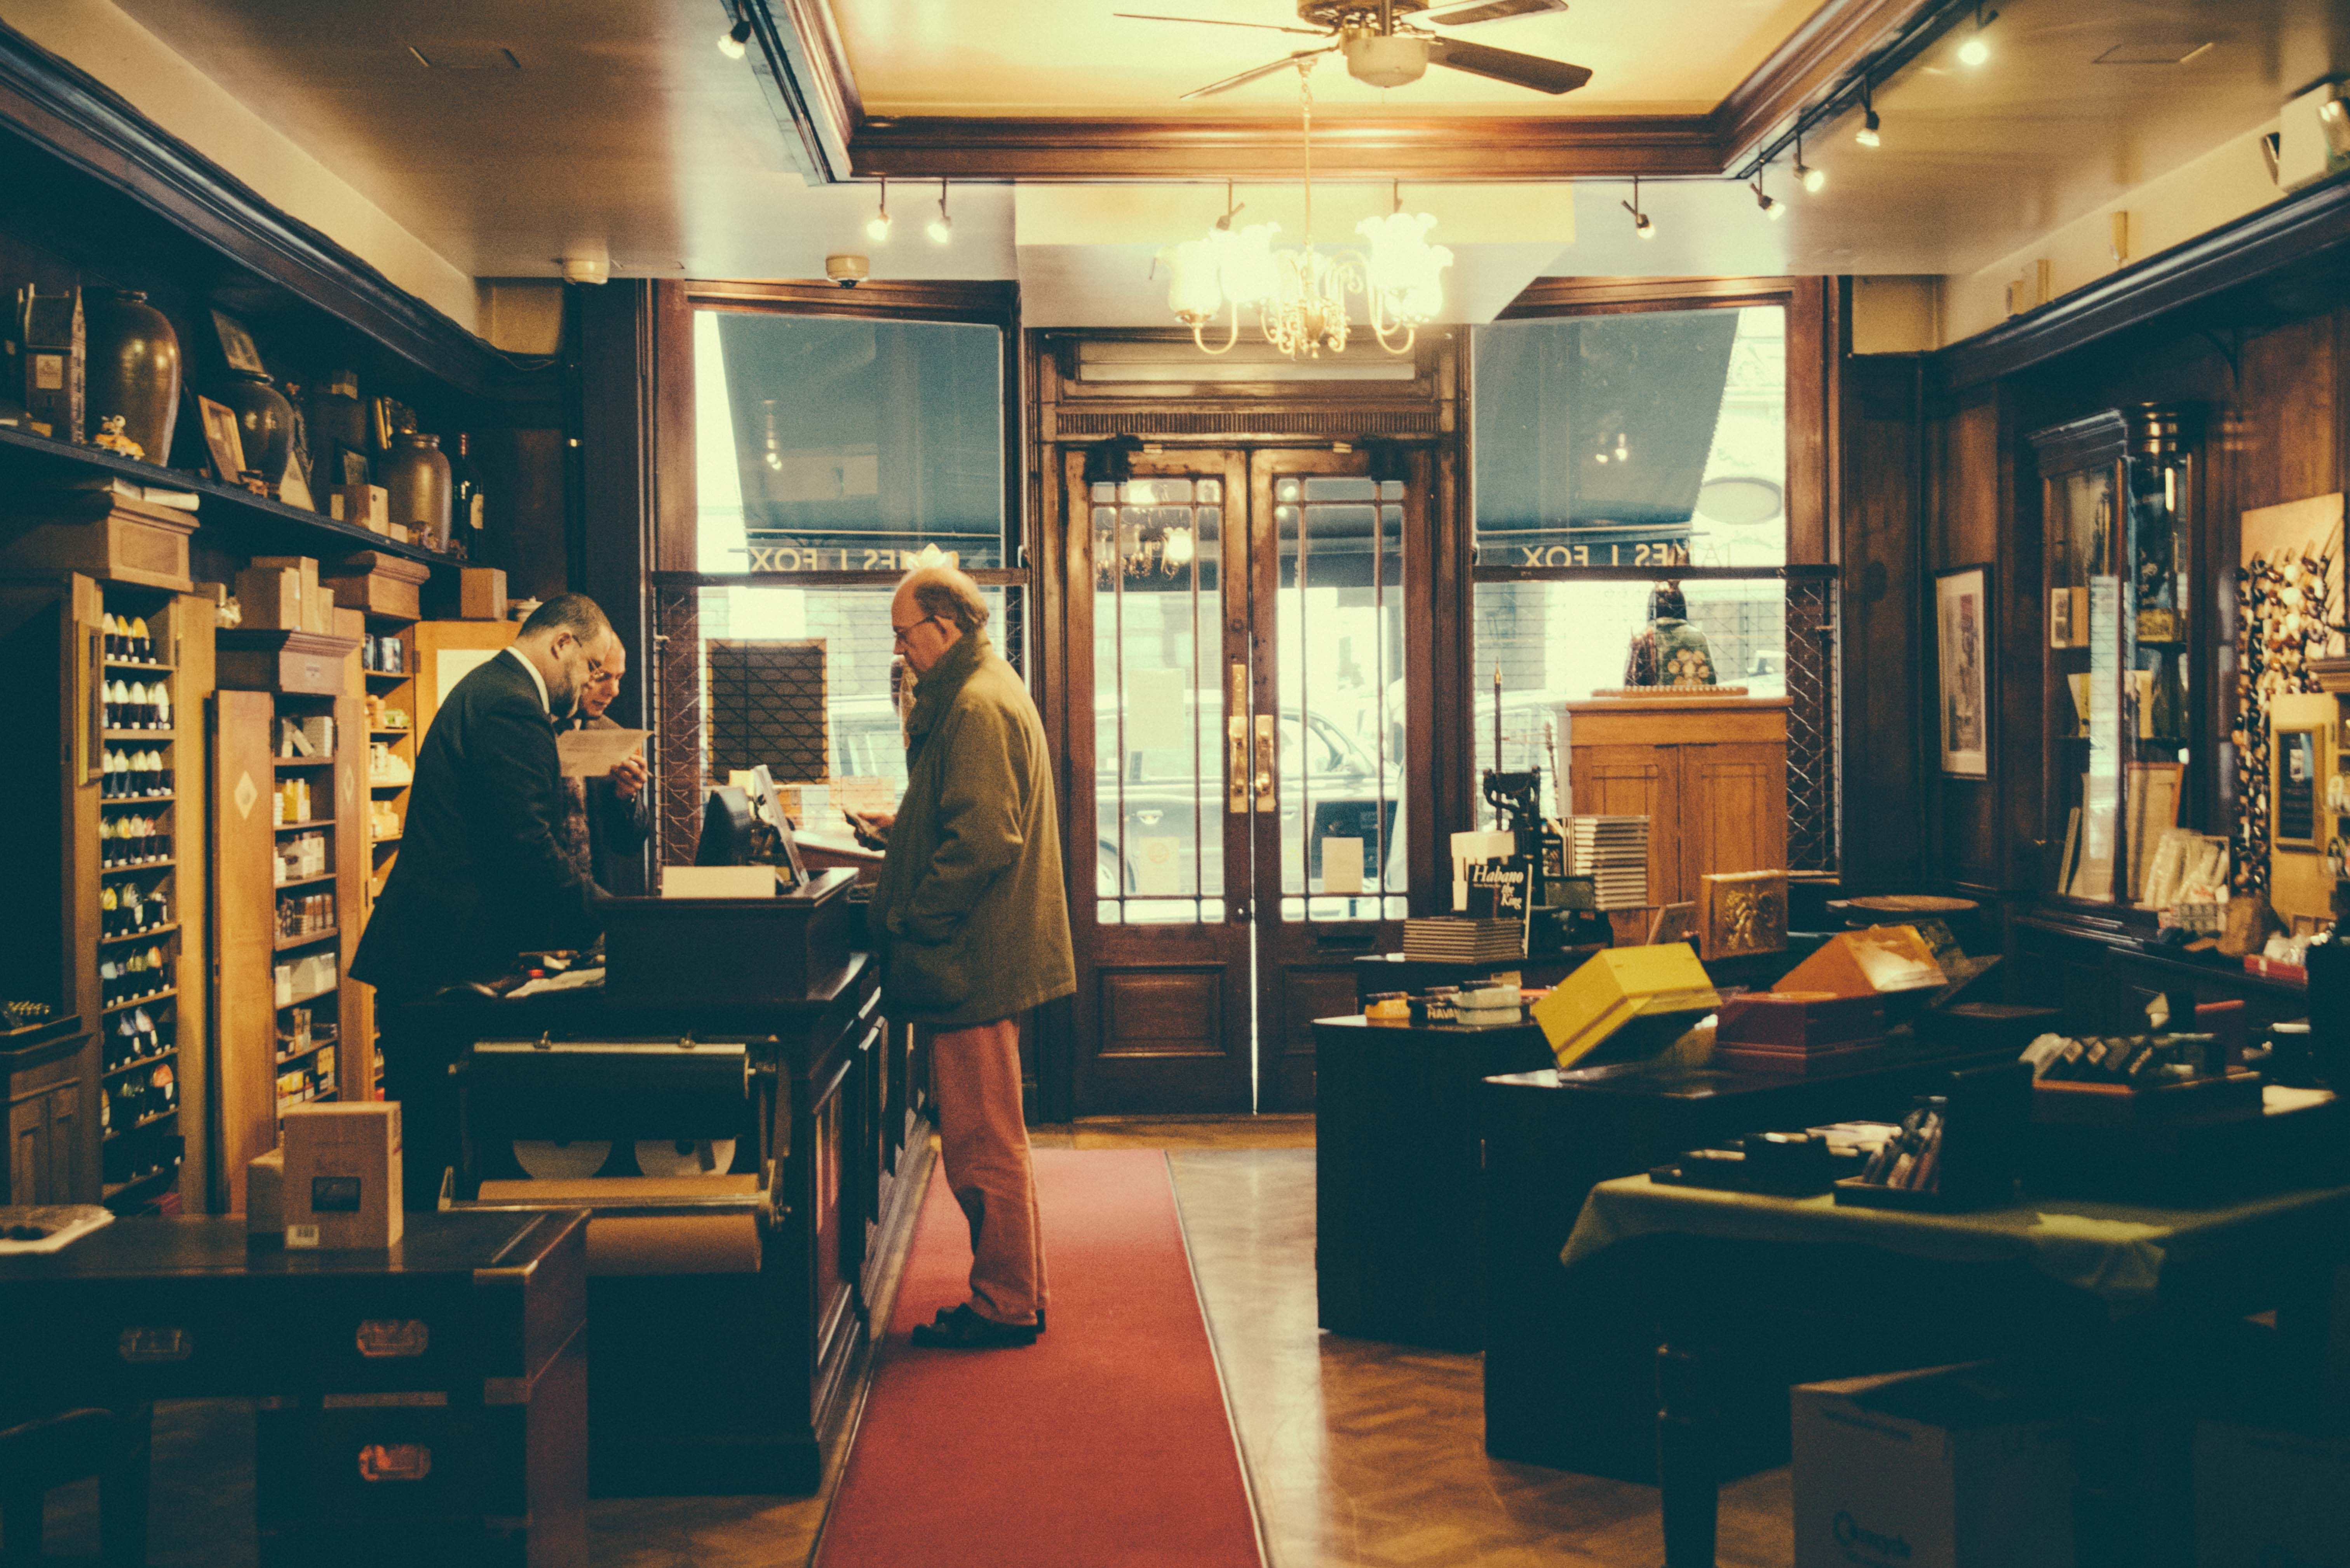 If You Smoke You Should Not Miss James J Fox At St James Street For Some Of Finest Cigars And Pipes In Town The Prime Mi Jack London The Originals Towns